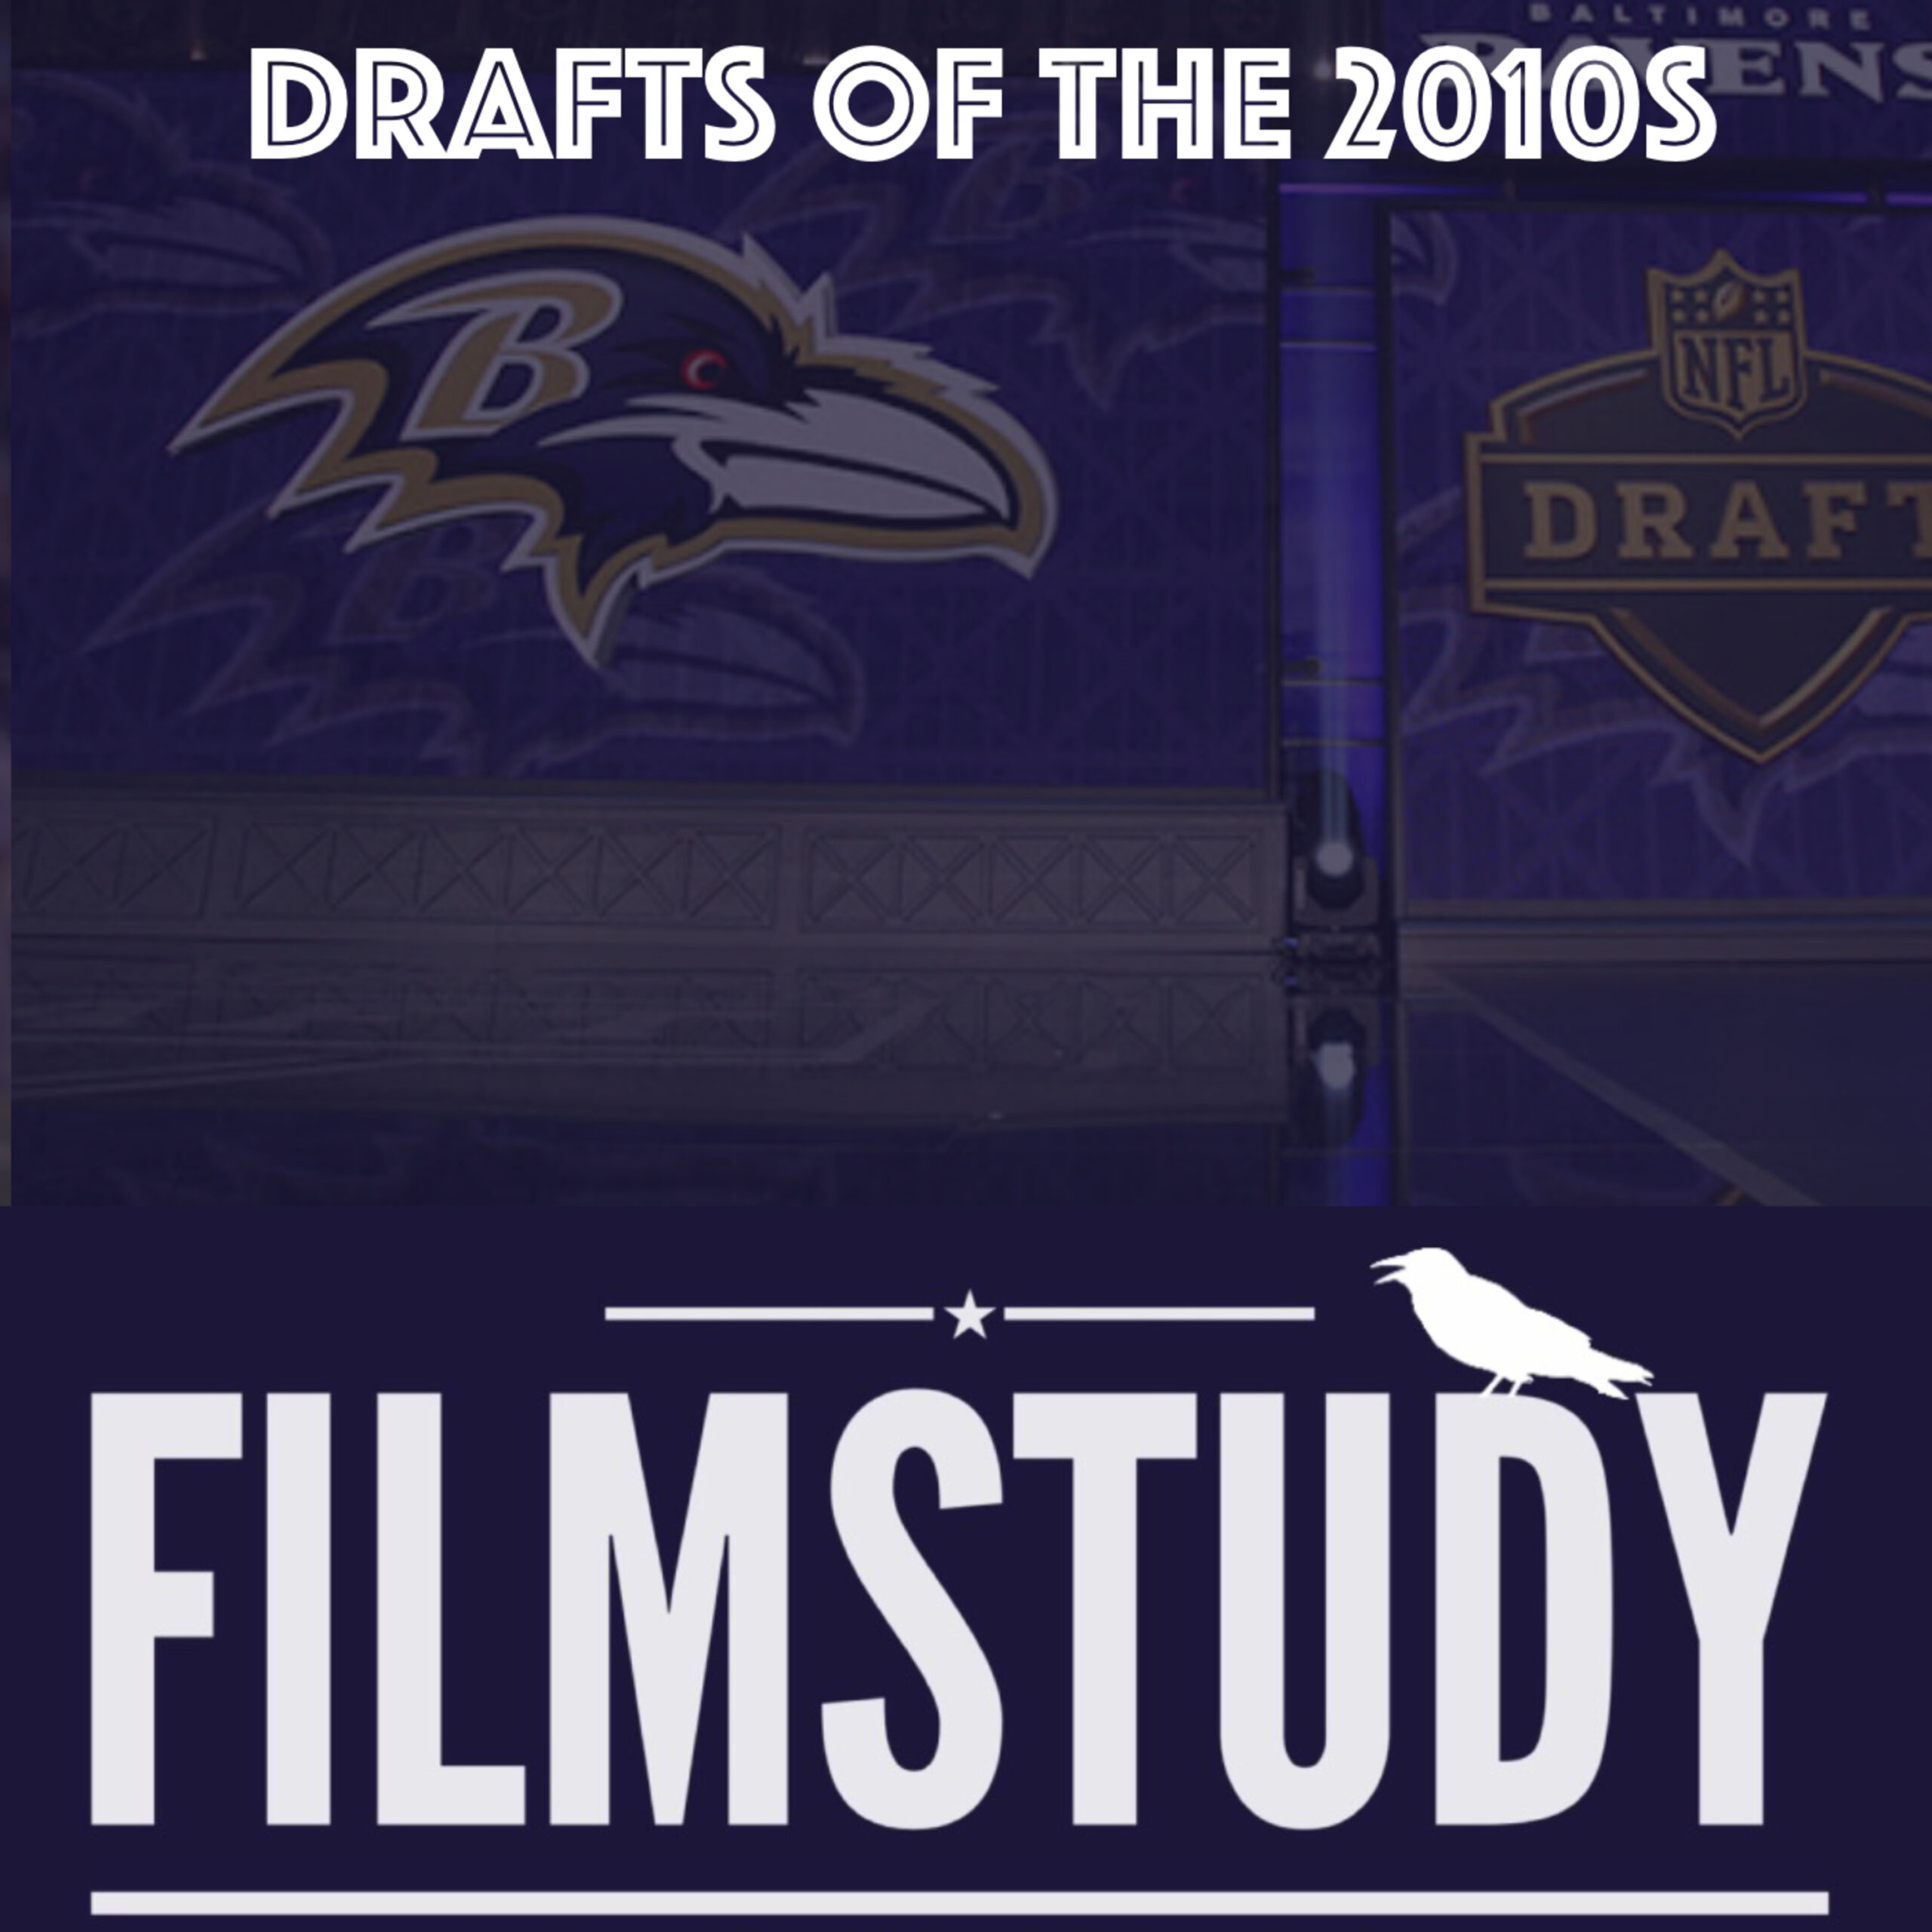 Raven Drafts of the 2010s